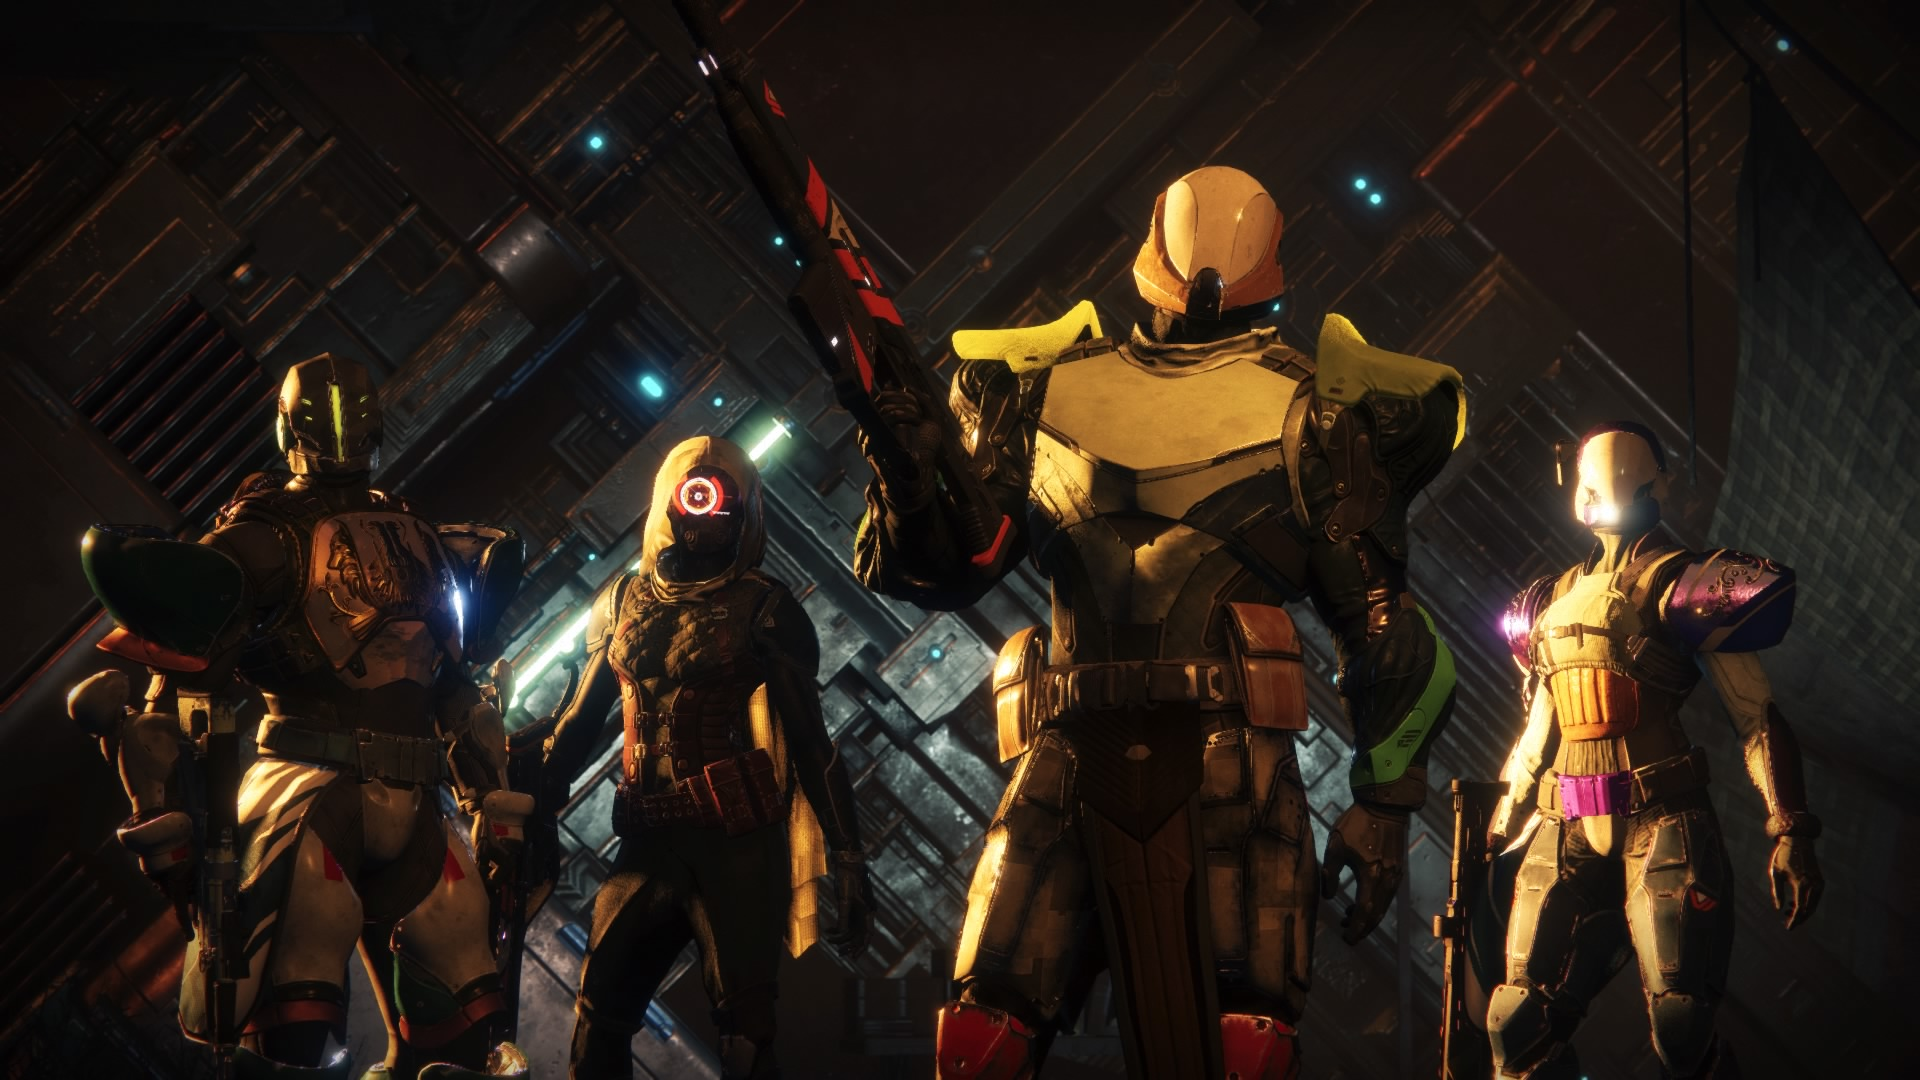 Bungie: Shadowkeep's Armor 2.0 system is about bringing stats back to Destiny 2